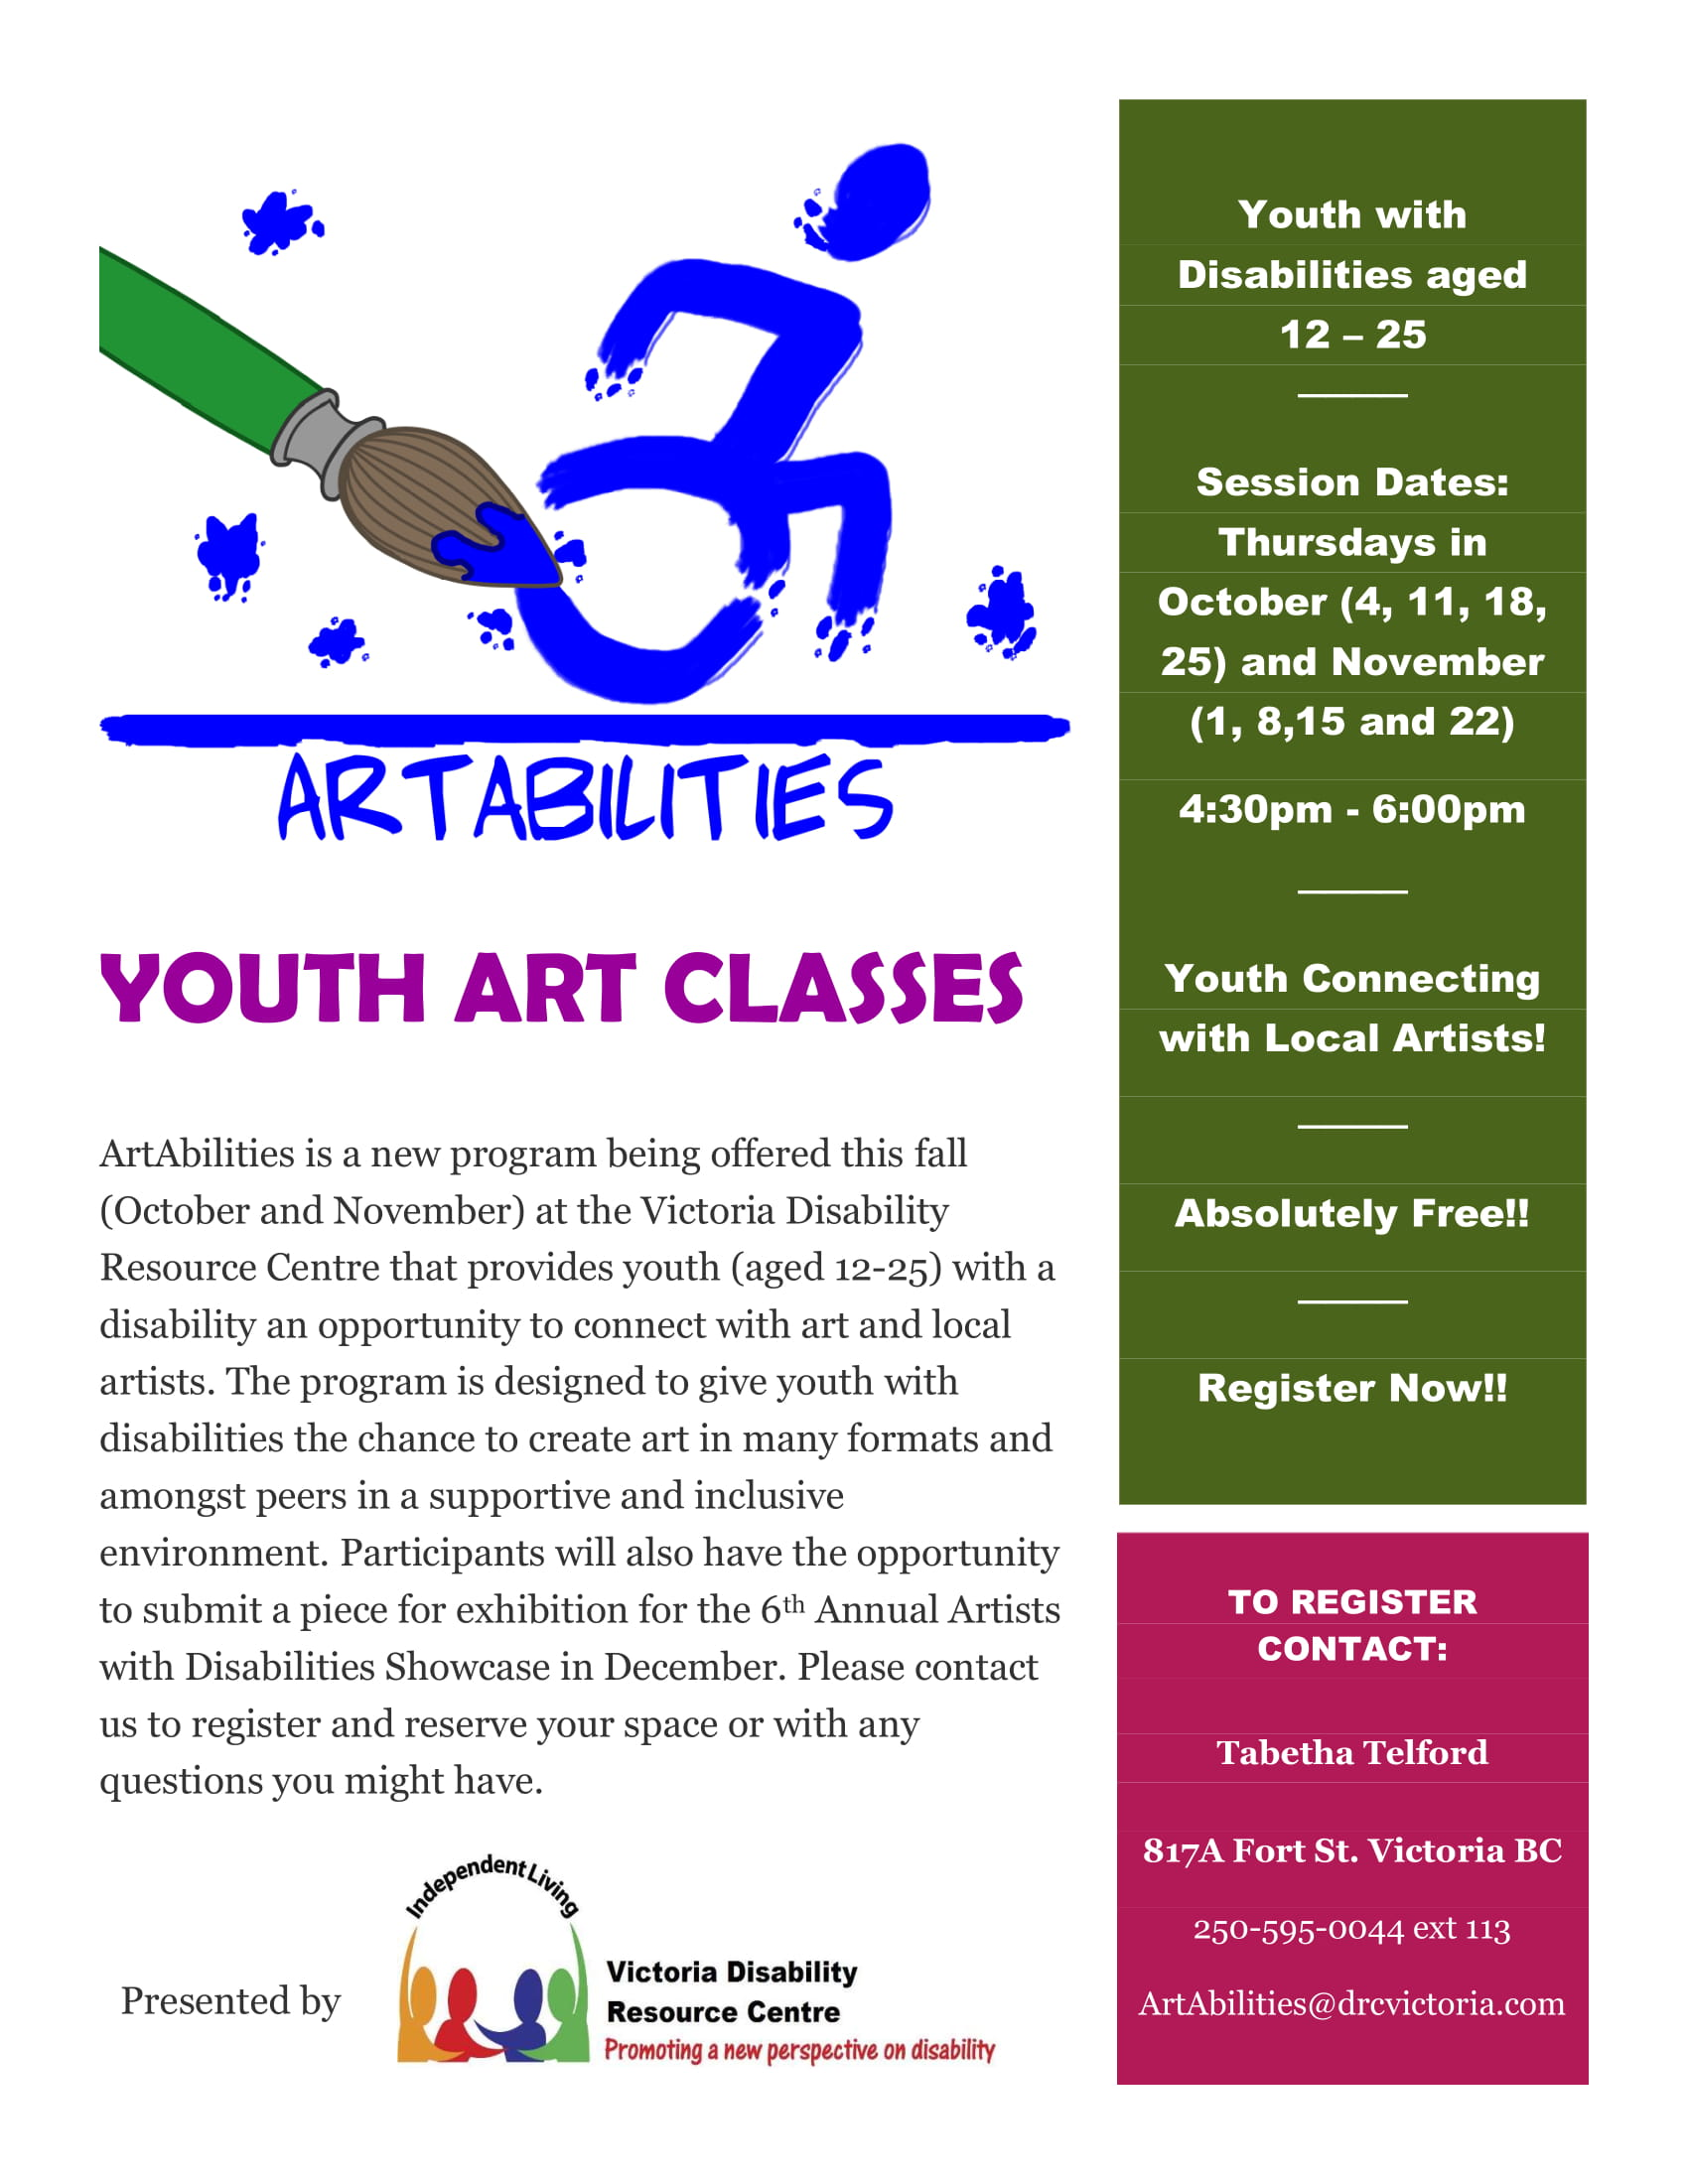 Poster reads: ArtAbilities: Youth Art Classes. Youth with Disabilities Aged 12-25. Session Dates: Thursdays in October (4, 11, 18, 25) and November (1, 8, 15, and 22). Youth connecting with local artists! Absolutely free! Register now! ArtAbilities is a new program being offered this fall (October and November) at the Victoria Disability Resource Centre that provides youth (aged 12-25) with a disability an opportunity to connect with art and local artists. The program is designed to give youth with disabilities the chance to create art in many formats and amongst peers in a supportive and inclusive environment. Participants will also have the opportunity to submit a piece for exhibition for the 6th Annual Artists with Disabilities Showcase in December. Please contact us to register and reserve you space or with any questions you may have. To register contact: Tabetha Telford. 817A Fort Street, Victoria BC. 250-595-0044 ext 113. ArtAbilities@drcvictoria.com. Presented by Victoria Disability Resource Centre: Promoting a New Perspective on Disability.